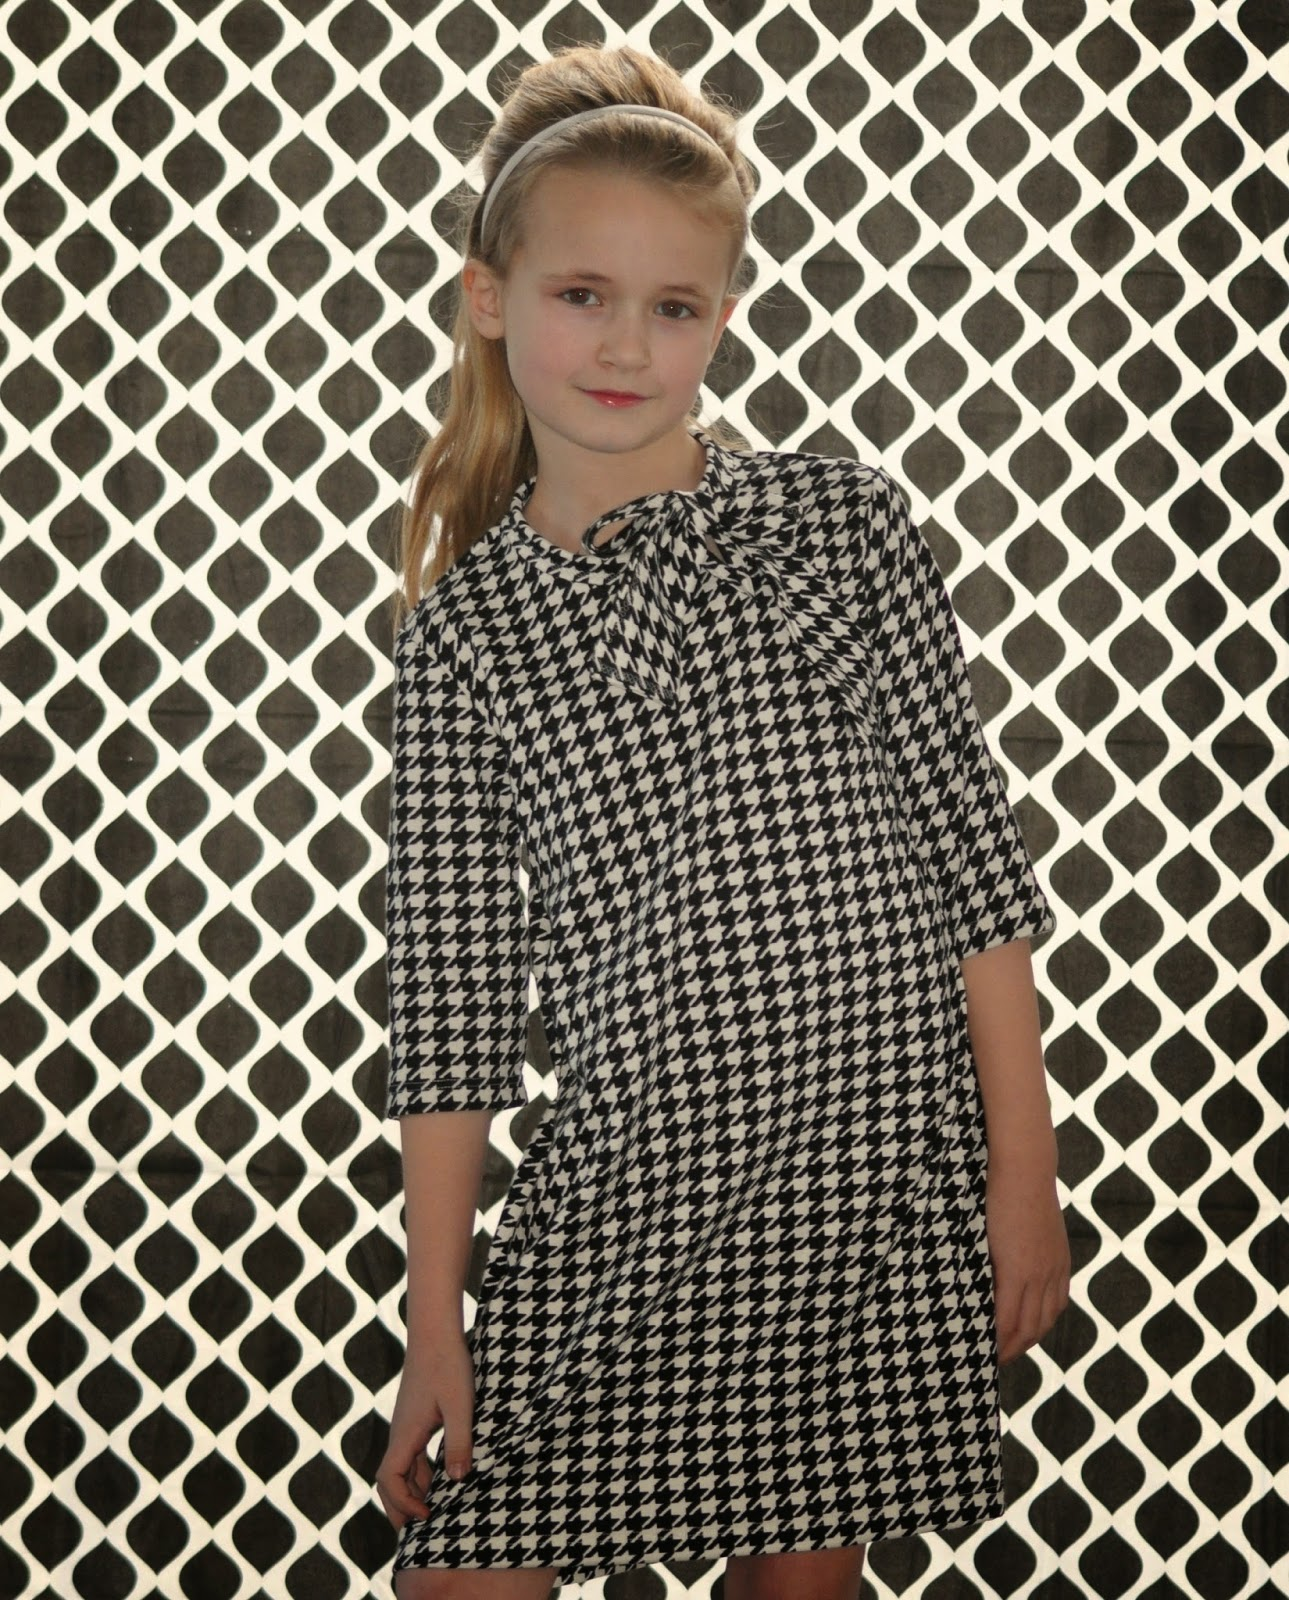 houndstooth DIY kinderjurk workshop naaien sewing fabric pied de poule